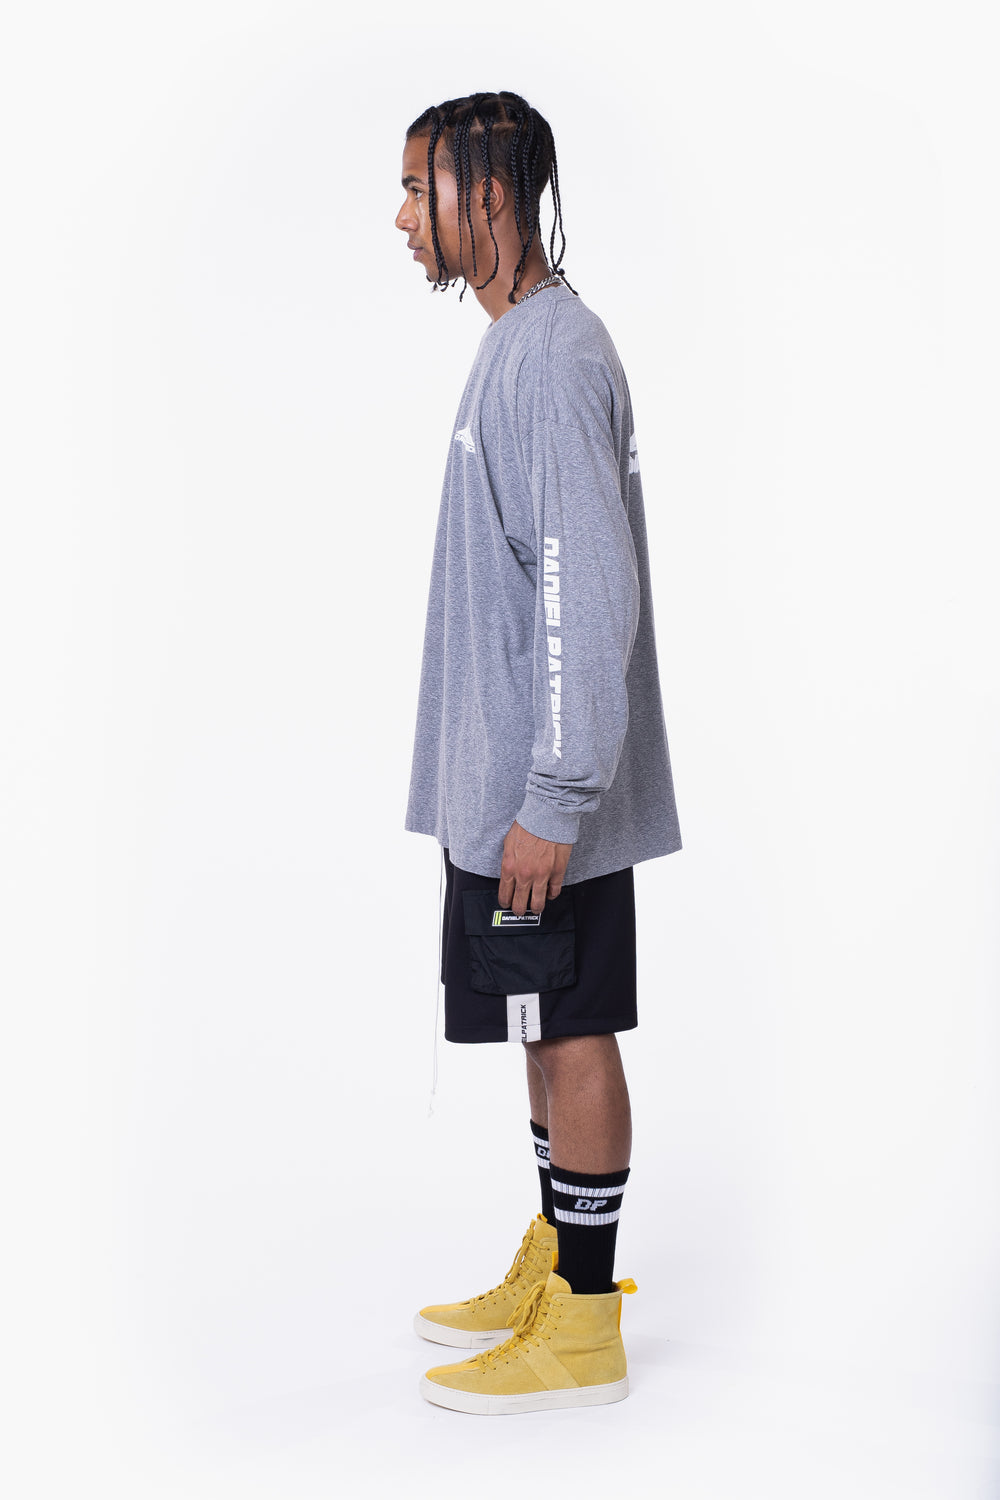 moving mountains l/s tee / heather grey